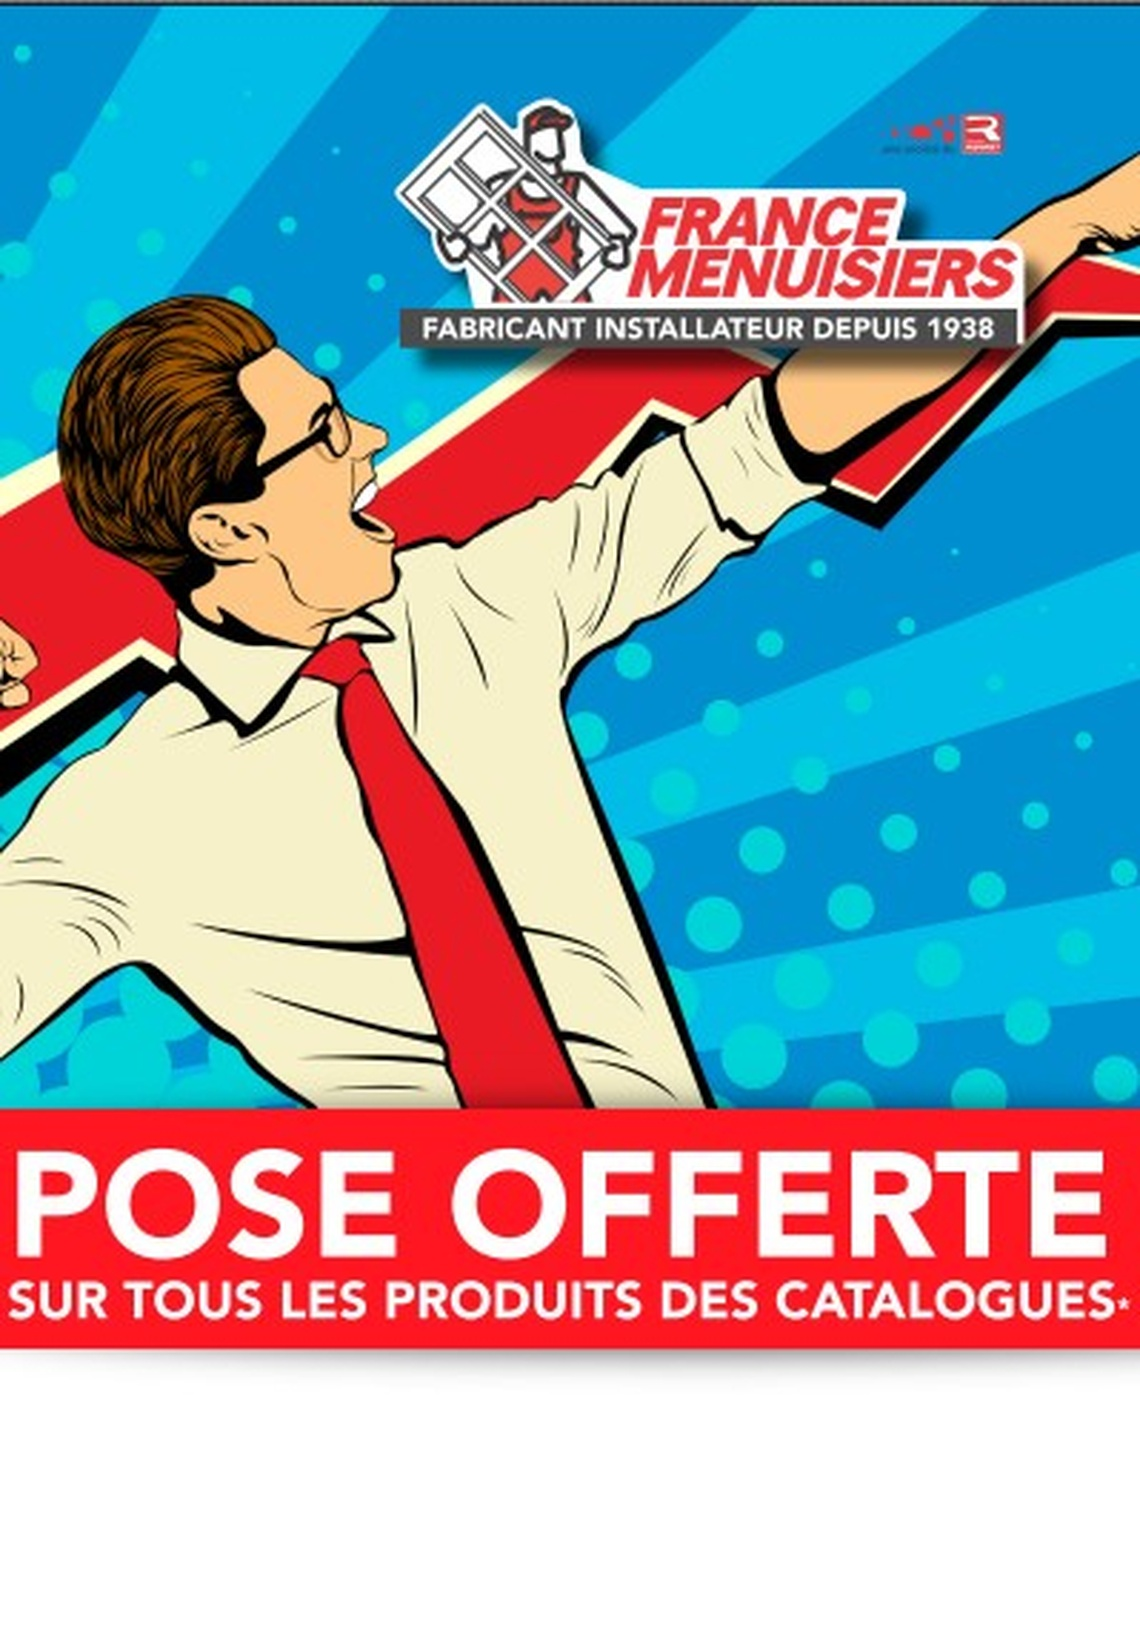 FRANCE MENUISIERS LA ROCHELLE MAGASIN D'USINE - POSE OFFERTE